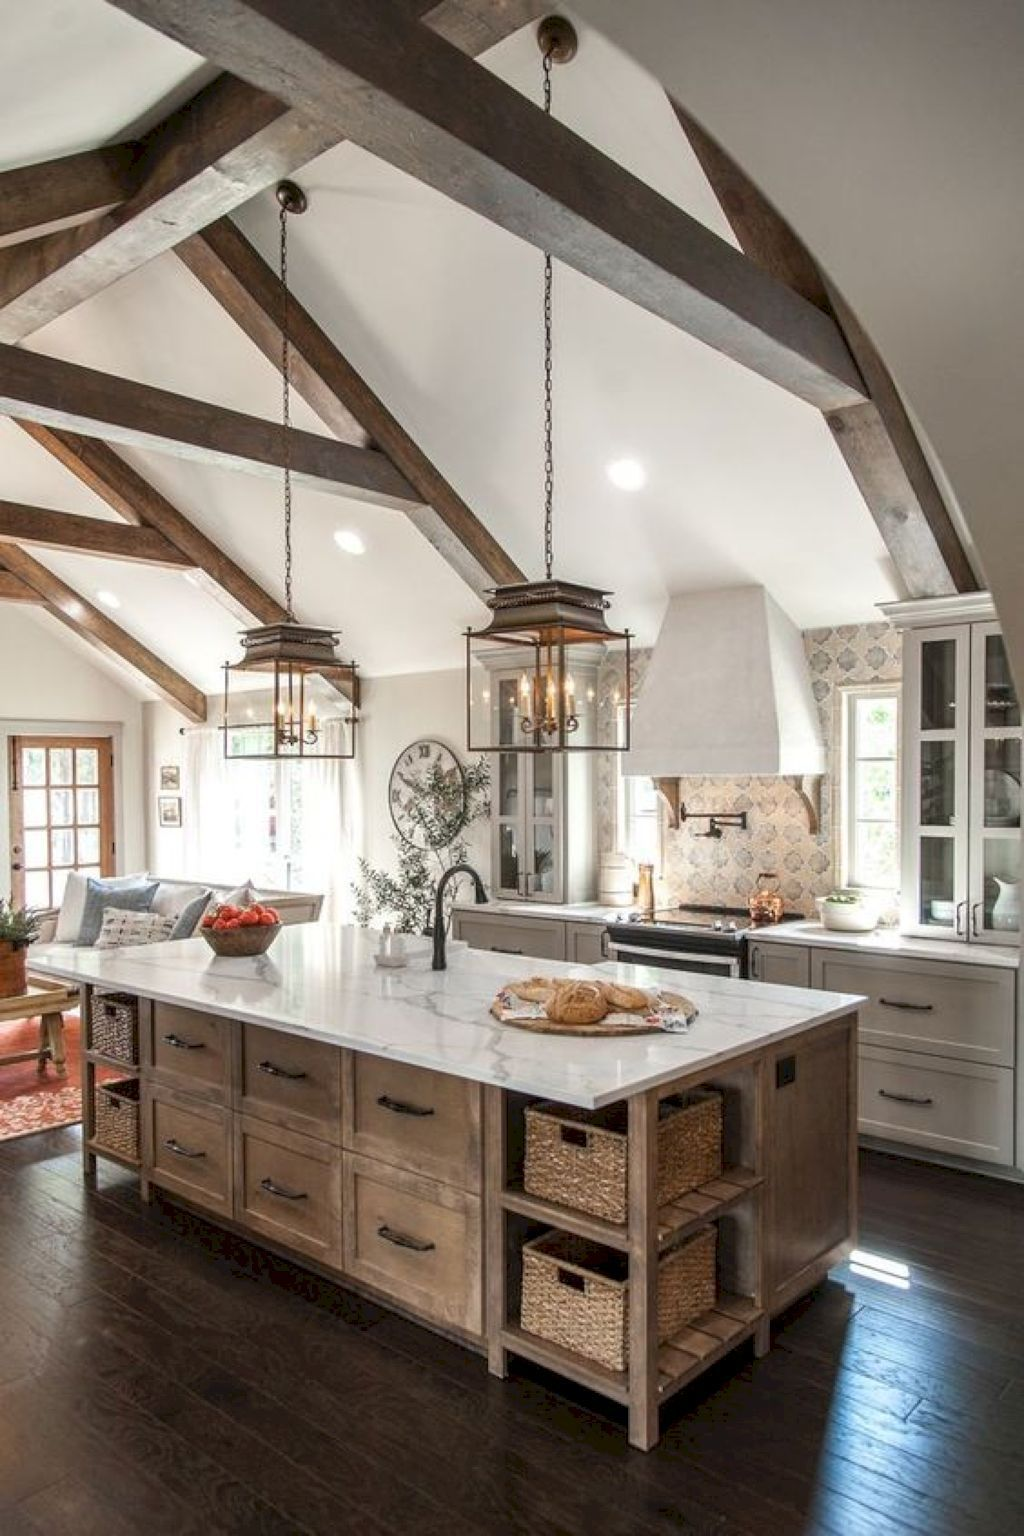 Adorable 35 Modern Farmhouse Kitchen Decor Ideas https://homeylife.com/35-modern-farmhouse-kitchen-decor-ideas/